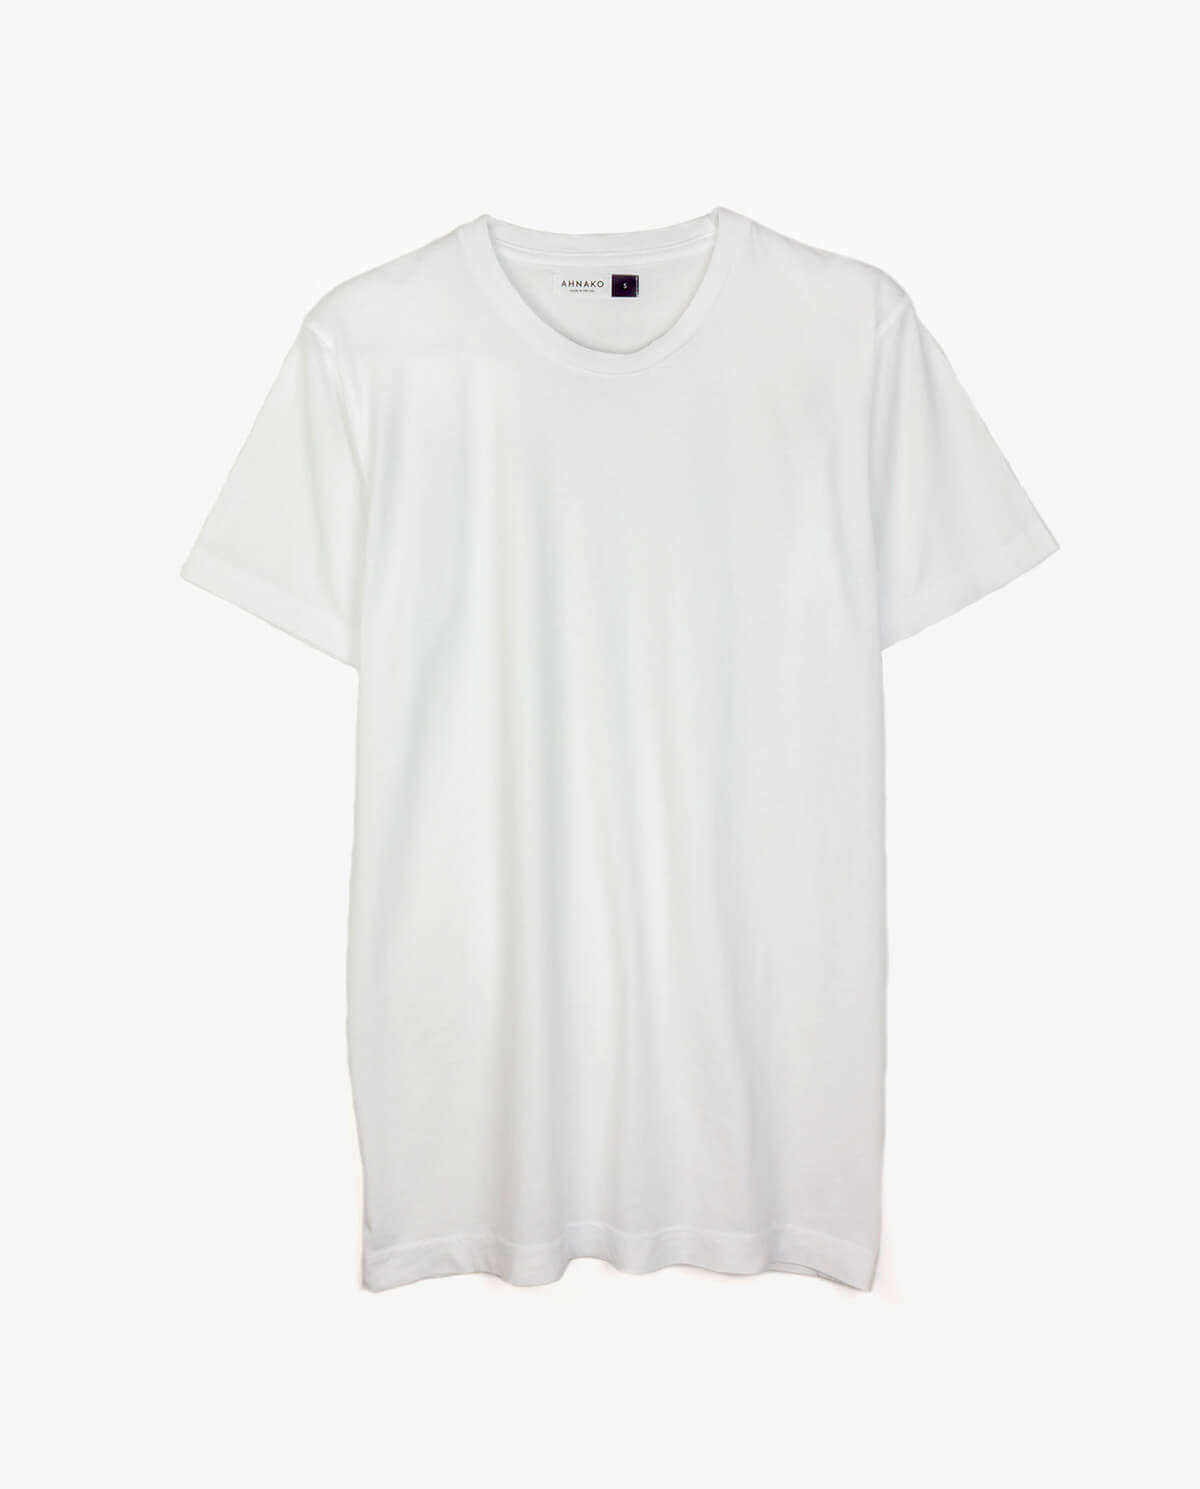 Ahnako Basic Tee Shirt - White